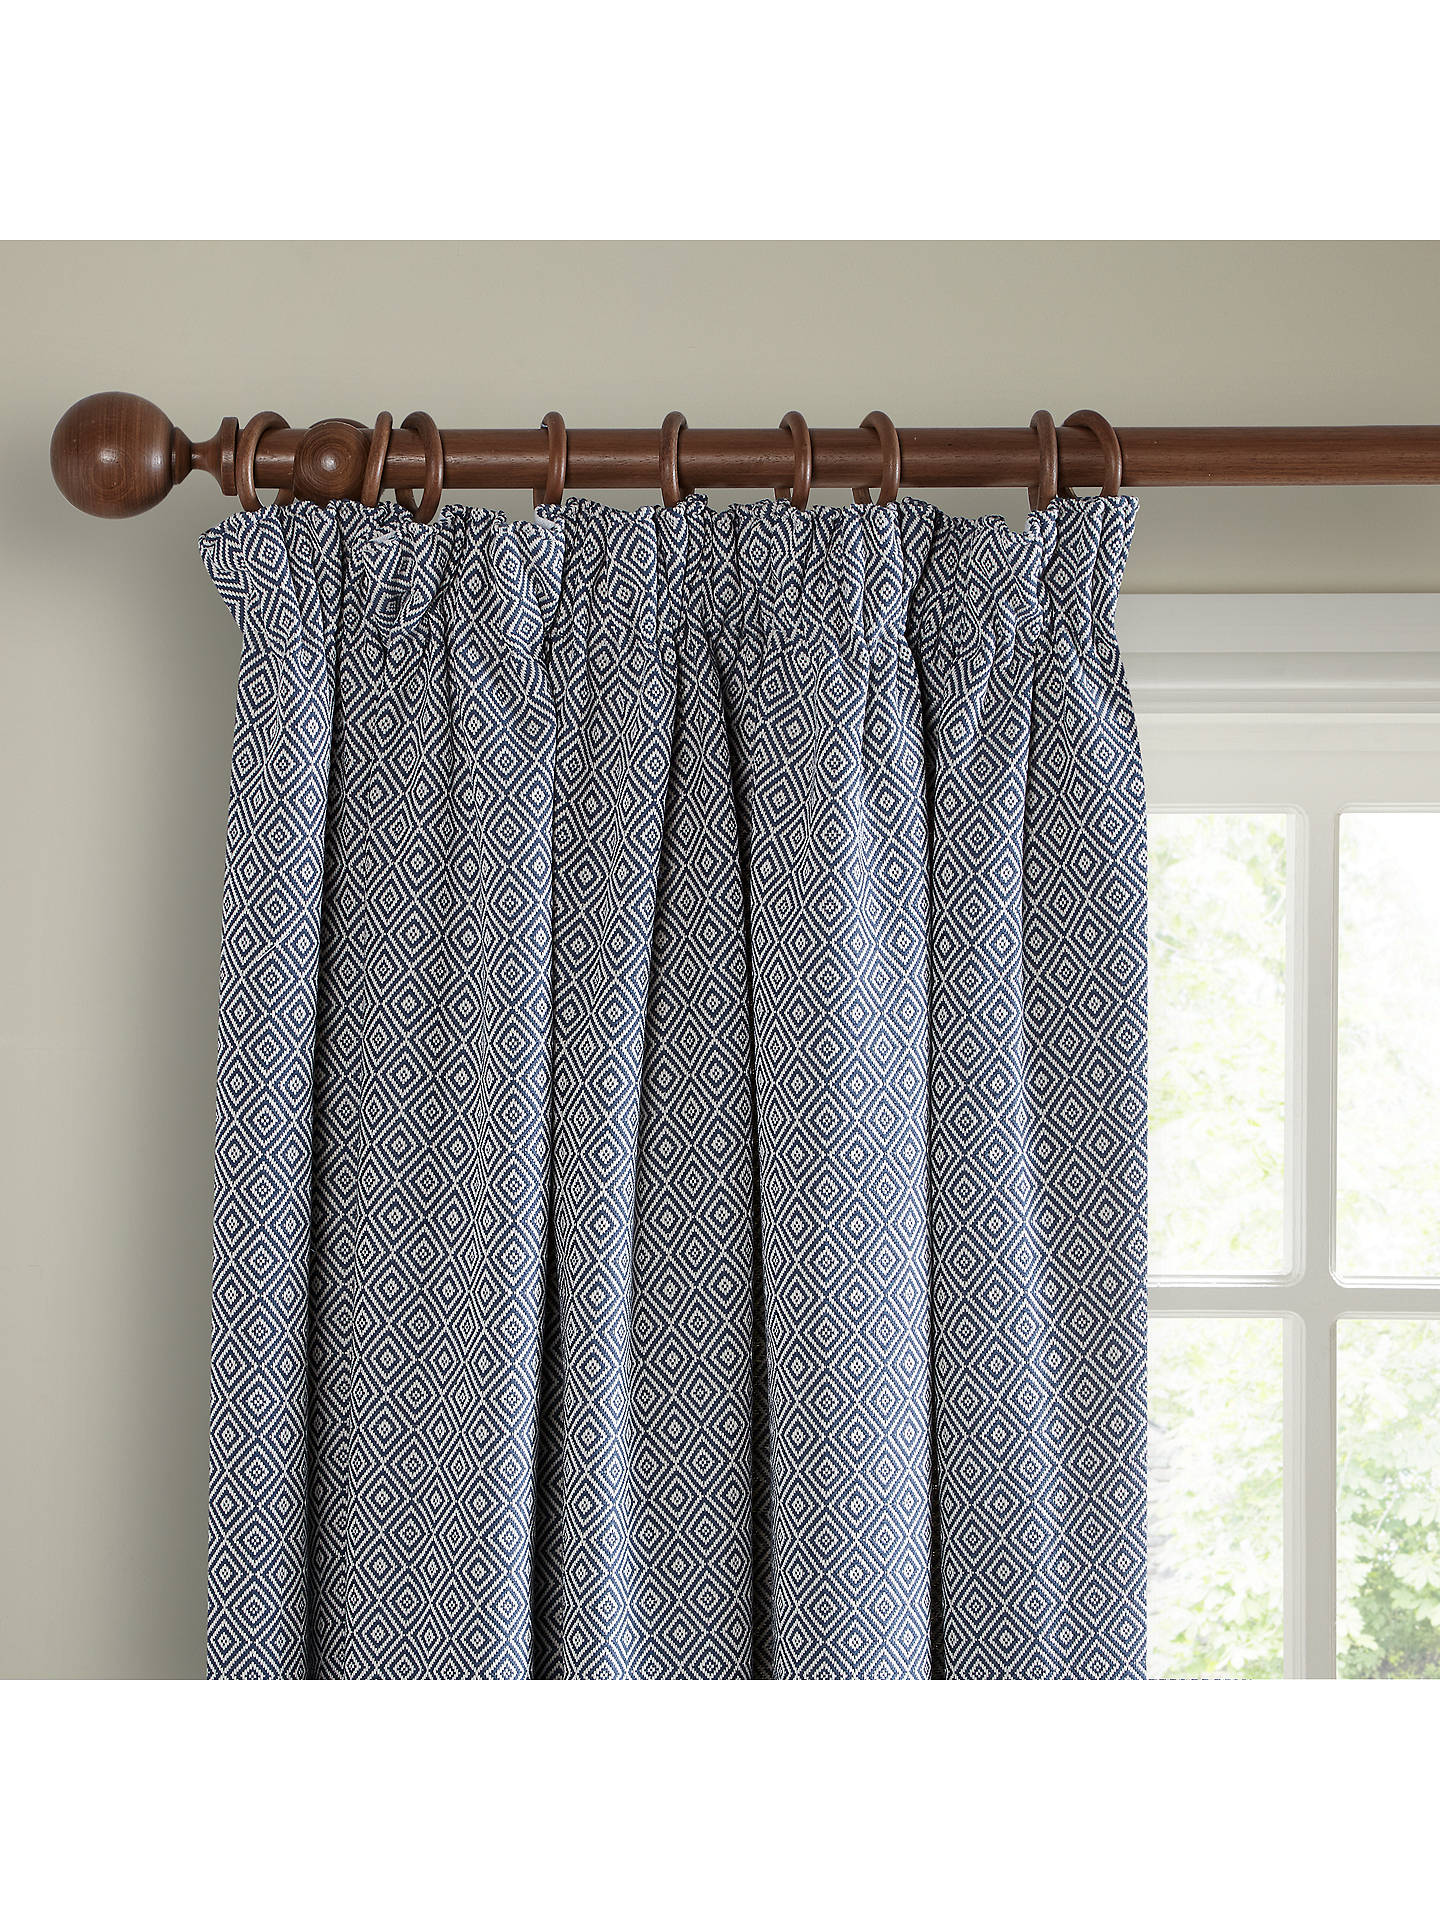 Buy John Lewis & Partners Mara Diamond Pair Lined Pencil Pleat Curtains, Indian Blue, W167 x Drop 137cm Online at johnlewis.com